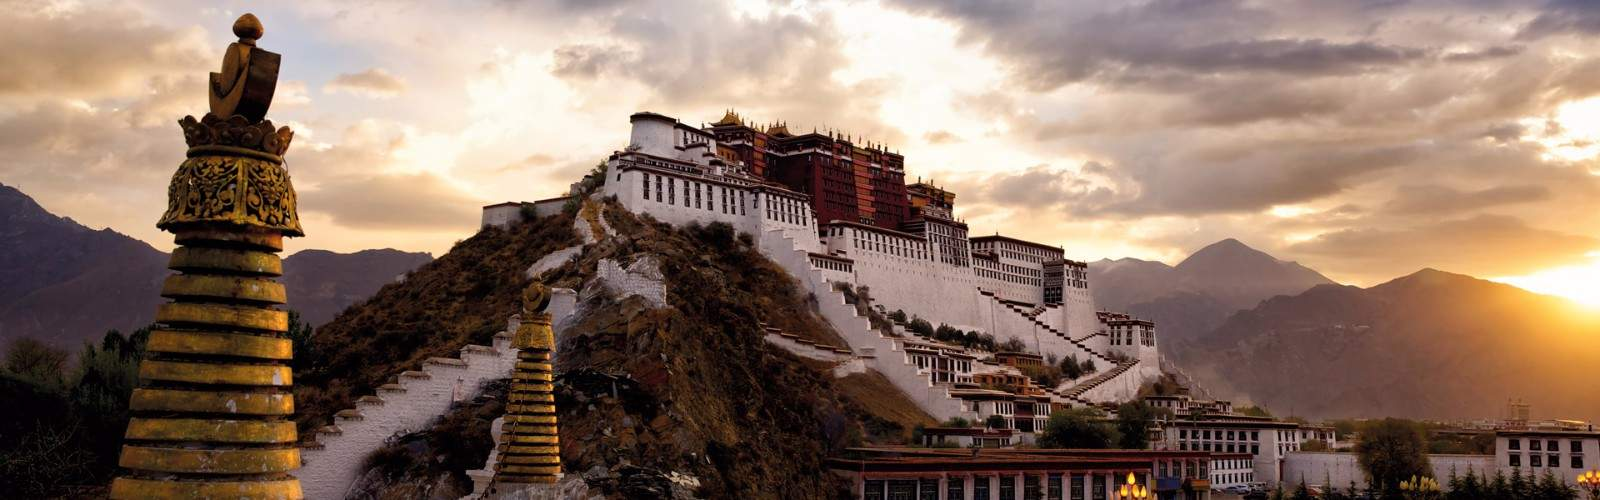 China & Spiritual Tibet Tour Tour | Wendy Wu Tours